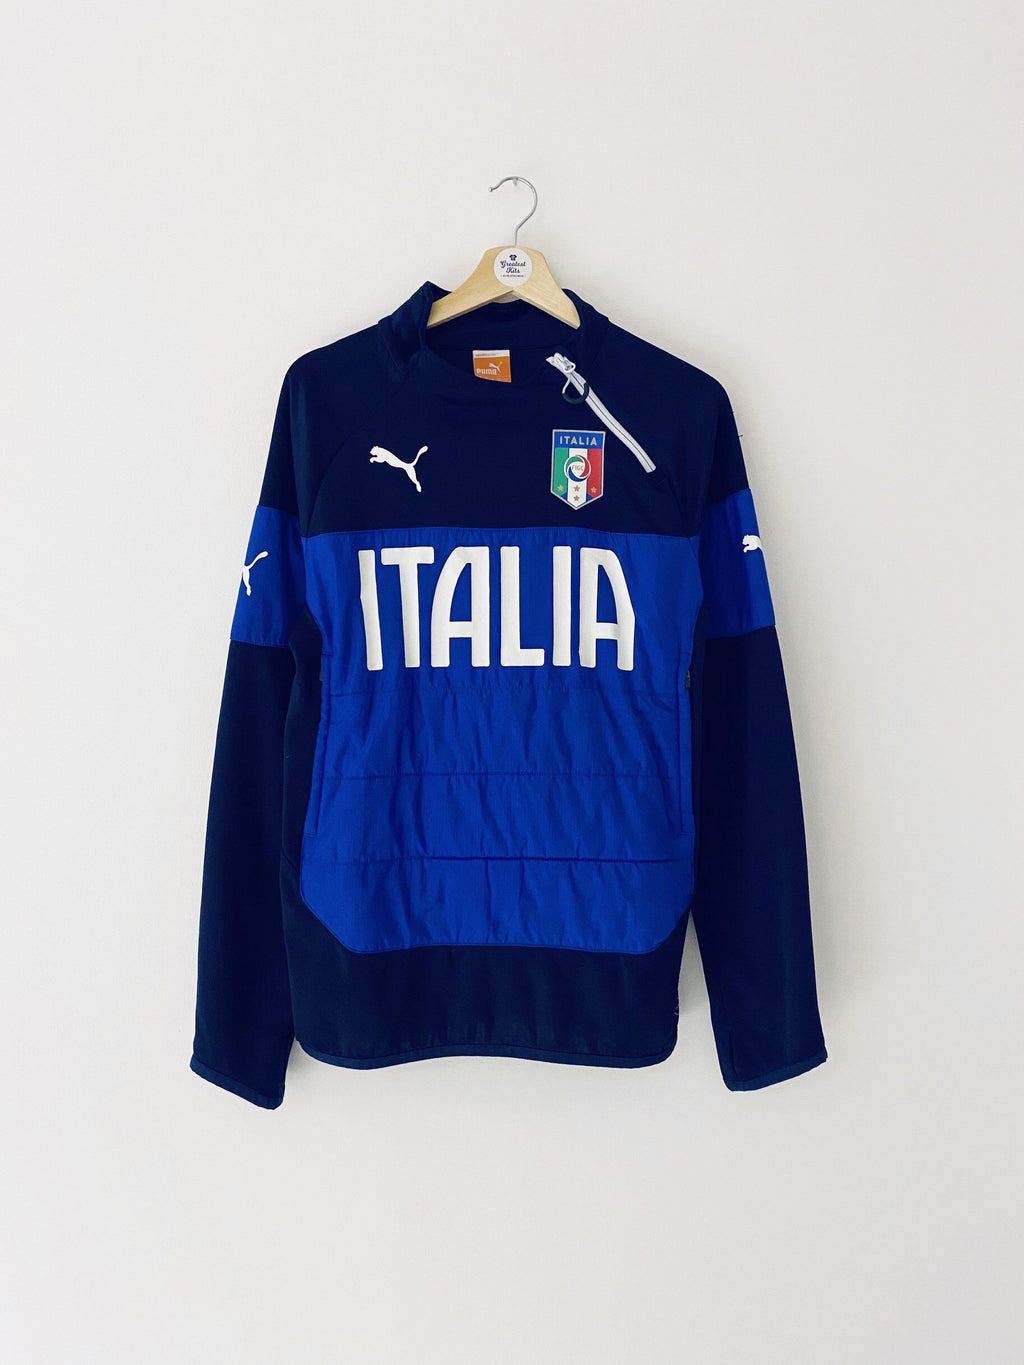 2014/15 Italy Padded Training Top (M) 9/10